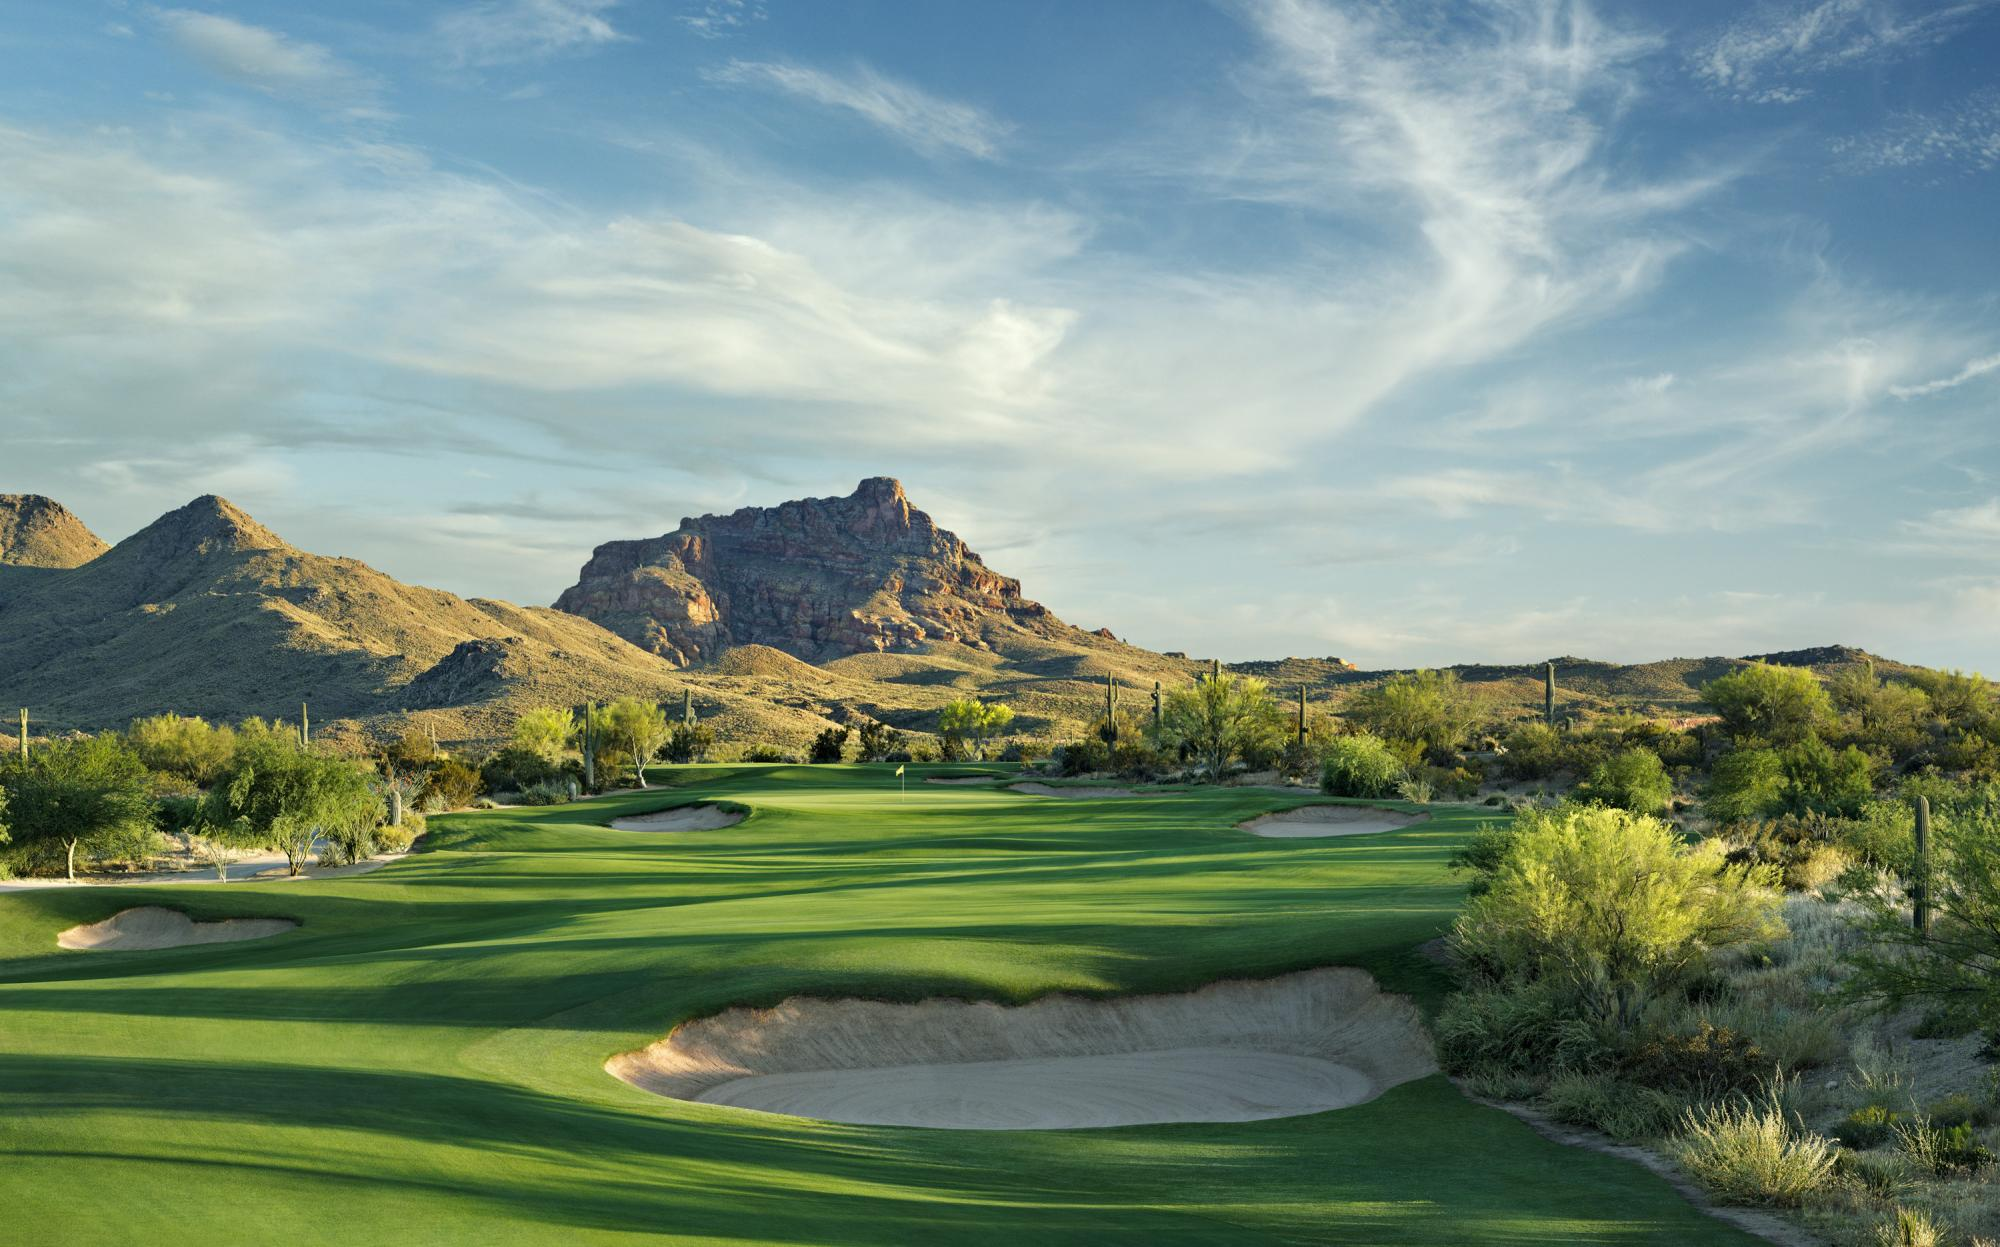 We-Ko-Pa Resort Golf has got some of the premiere golf course within Arizona